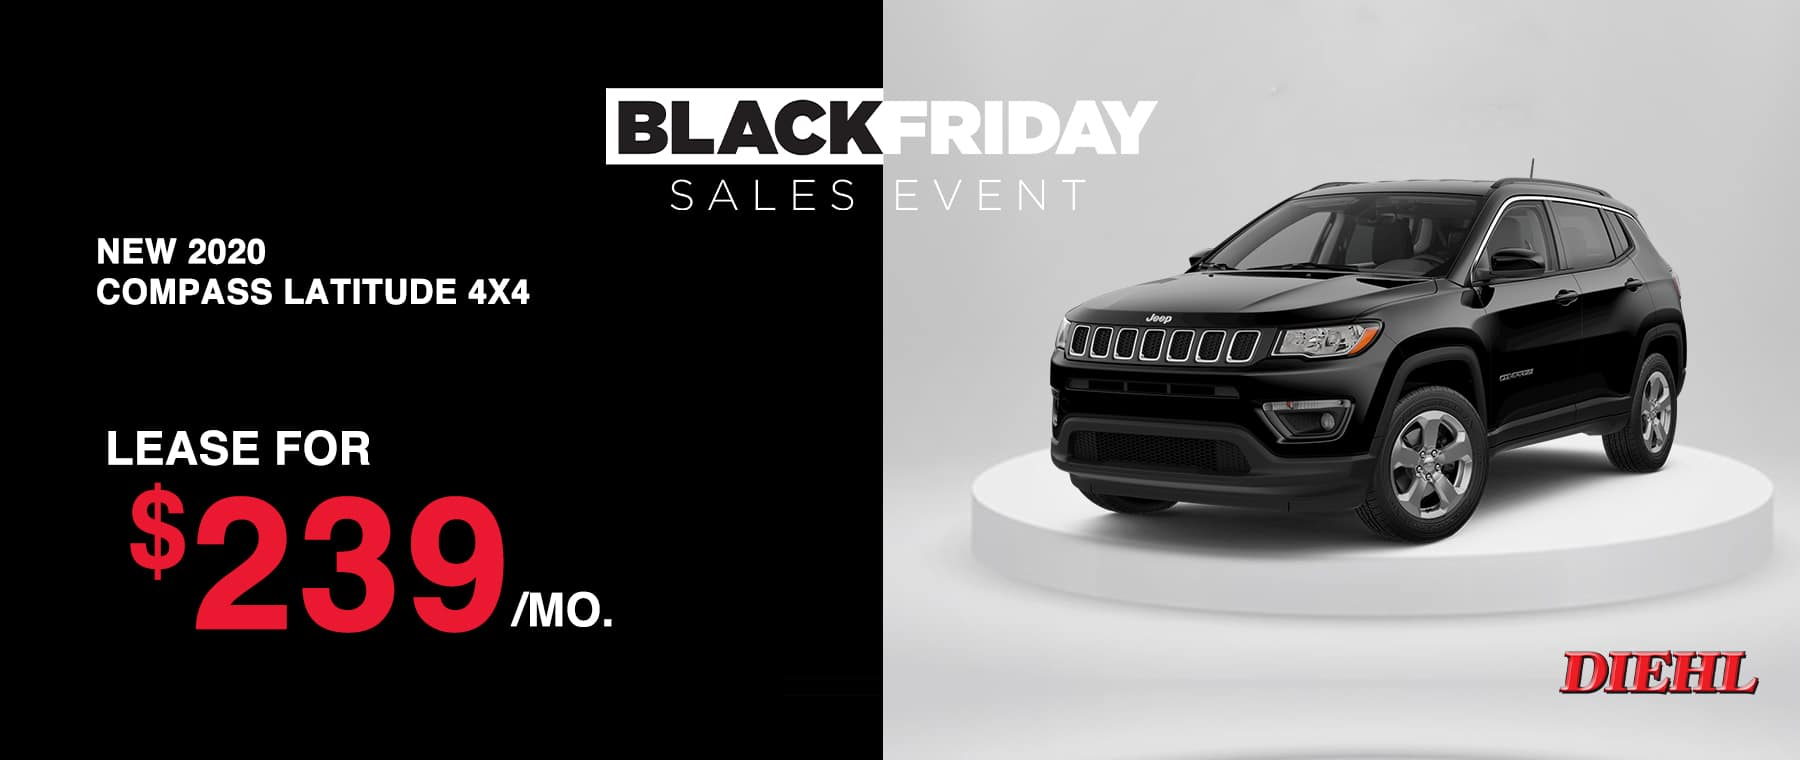 J200903-2020JeepCompass Diehl Robinson Chrysler dodge jeep ram Black Friday sales event lease special new vehicle special sale year end savings employee pricing plus